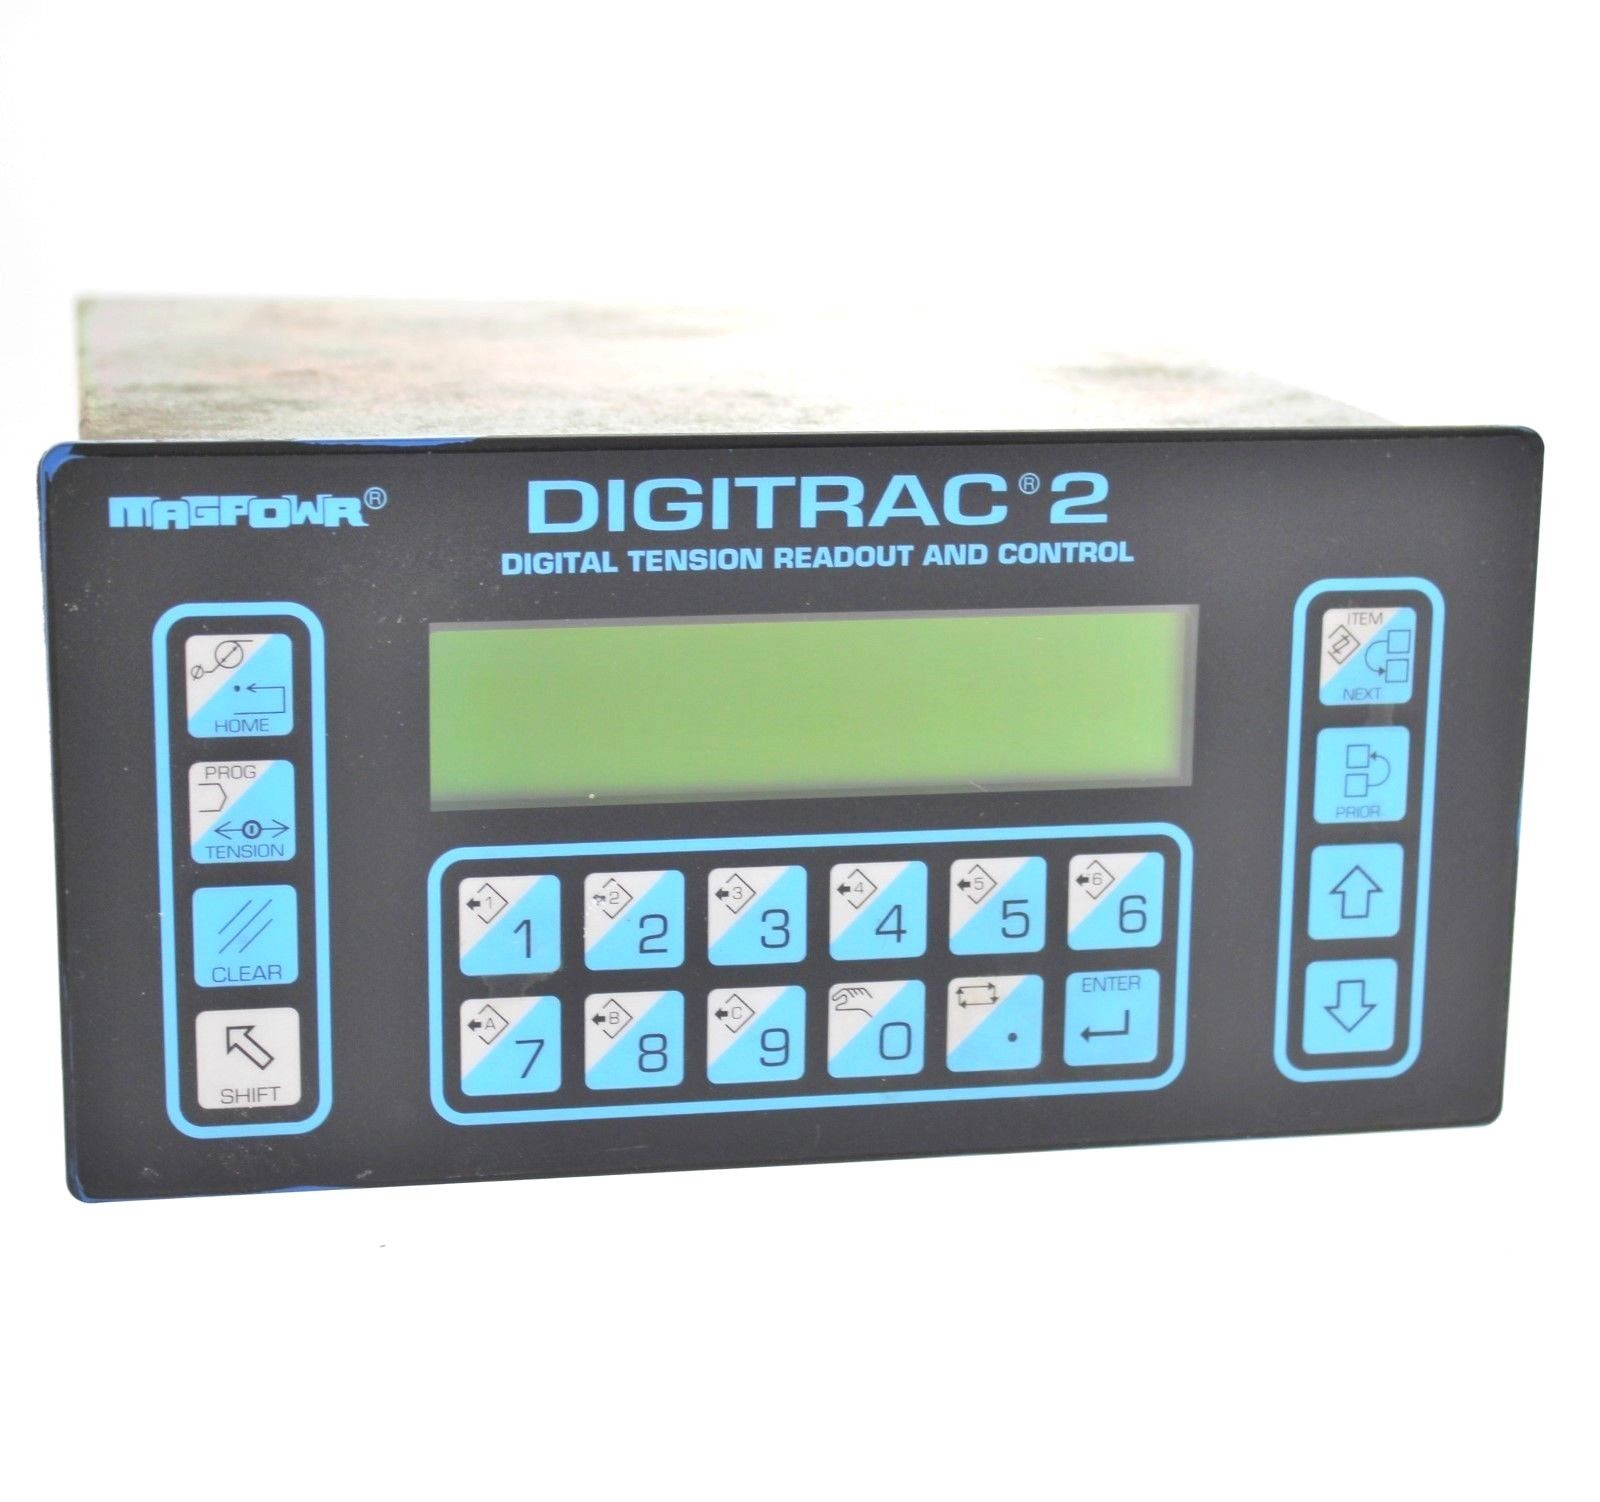 Magpowr Digitrac 2 Digital Tension Readout And Control Module